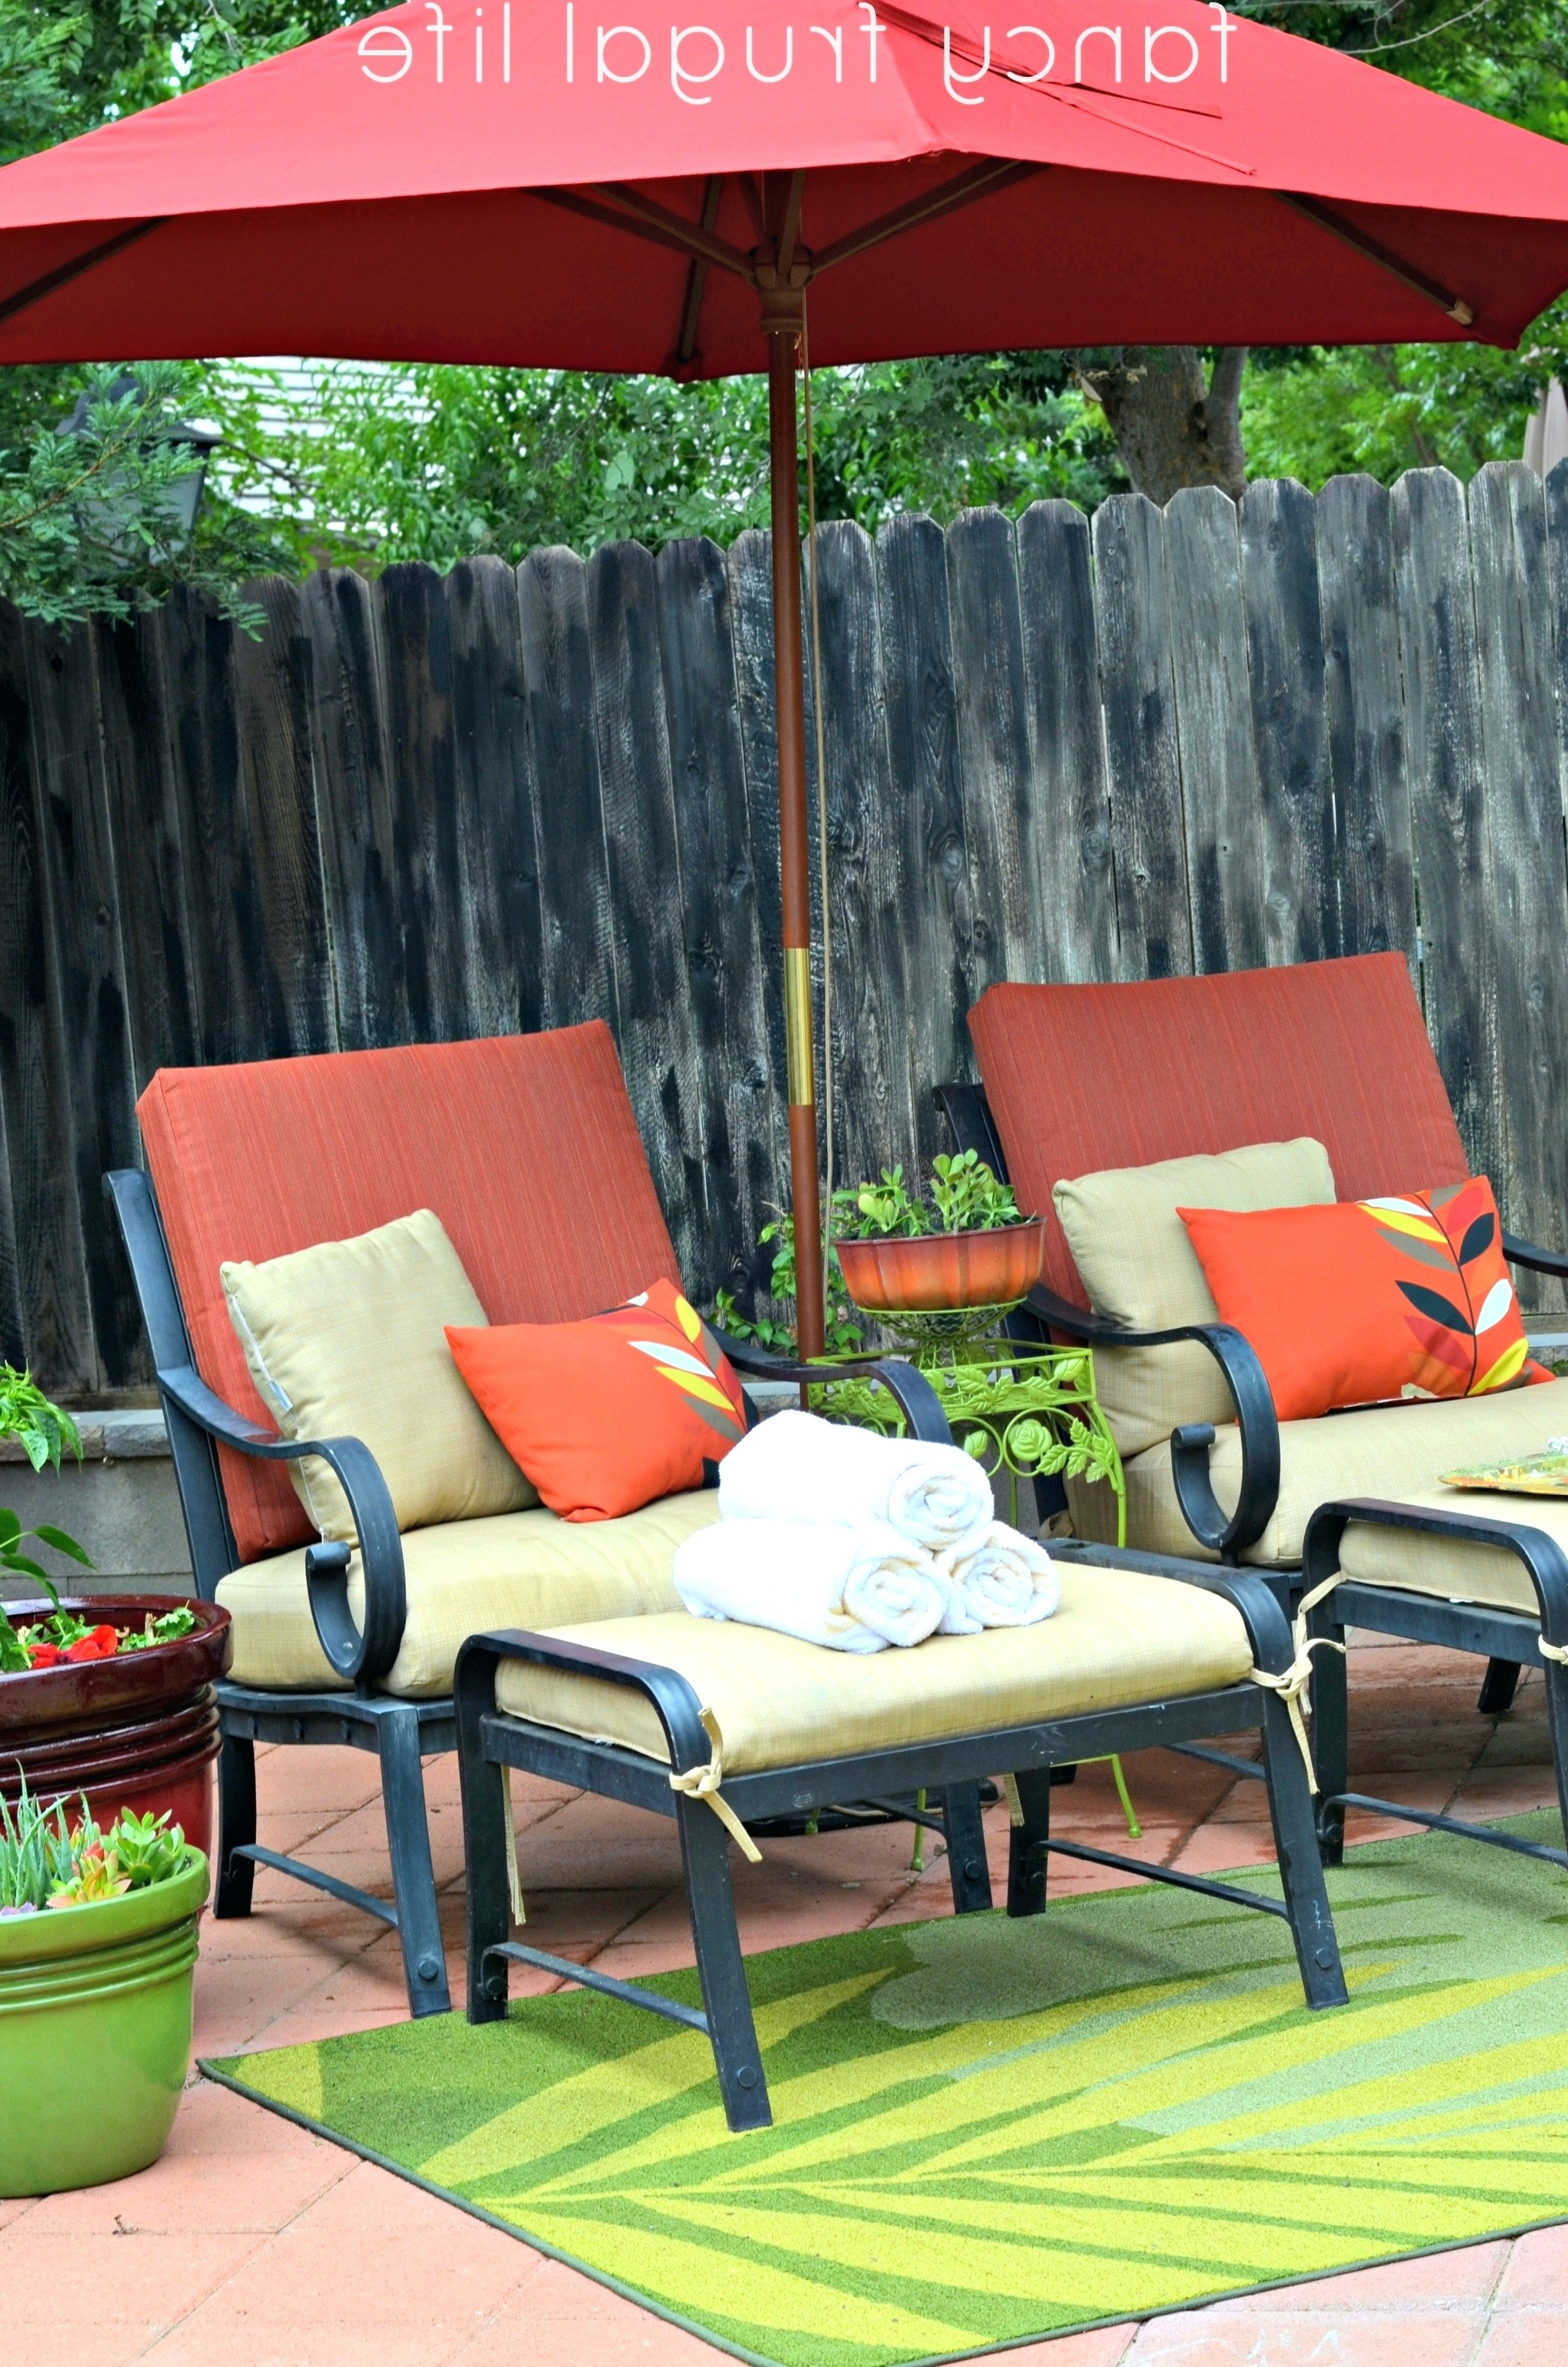 20 Elegant Ideas For Walmart Patio Chair Seat Cushions Regarding Current Jamaica Outdoor Chaise Lounges (Gallery 20 of 25)